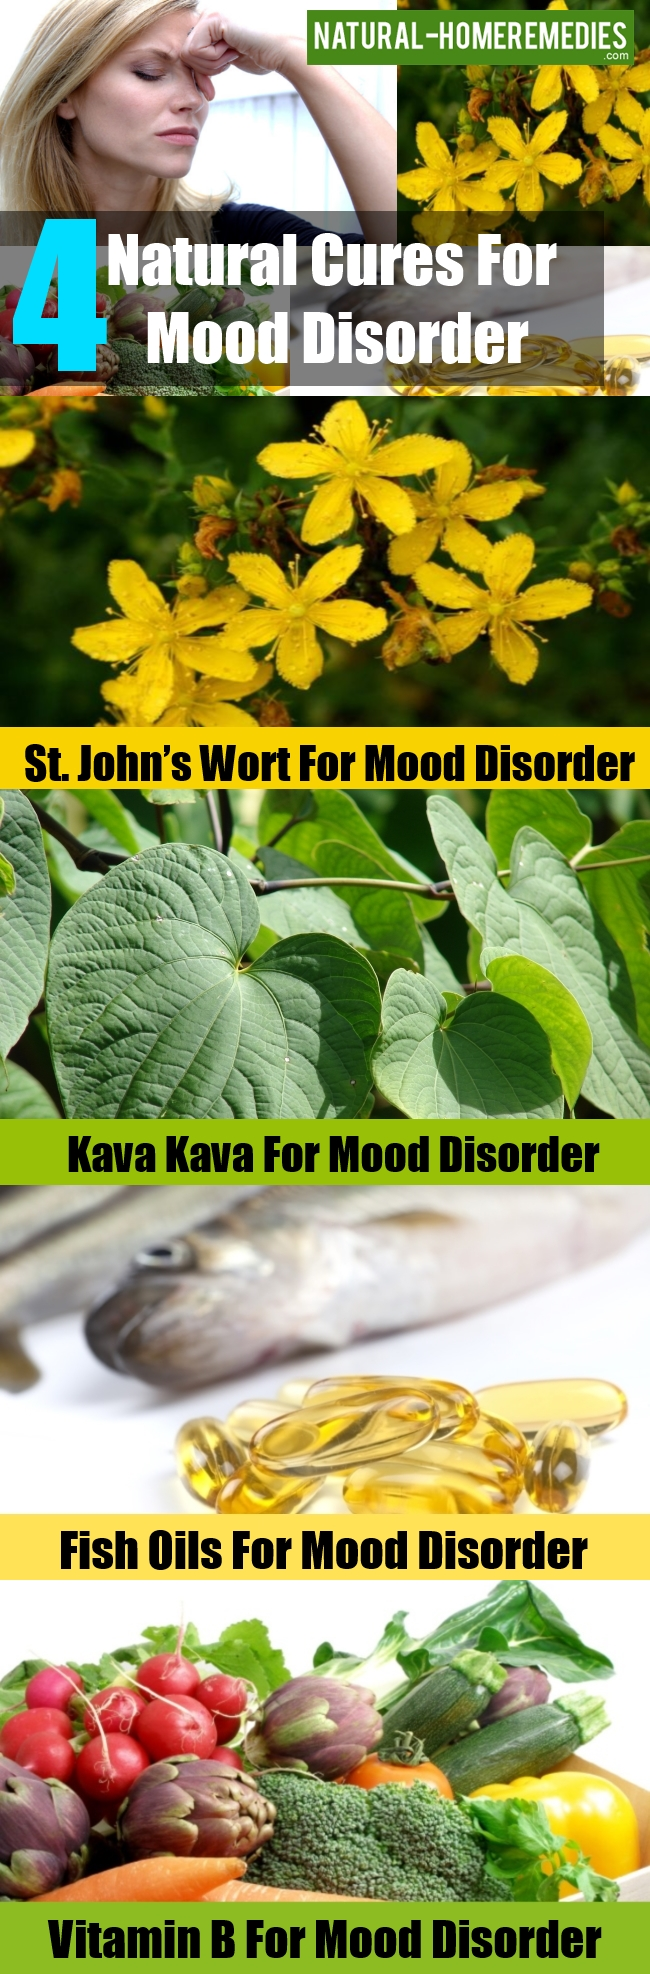 Natural Cures For Mood Disorder